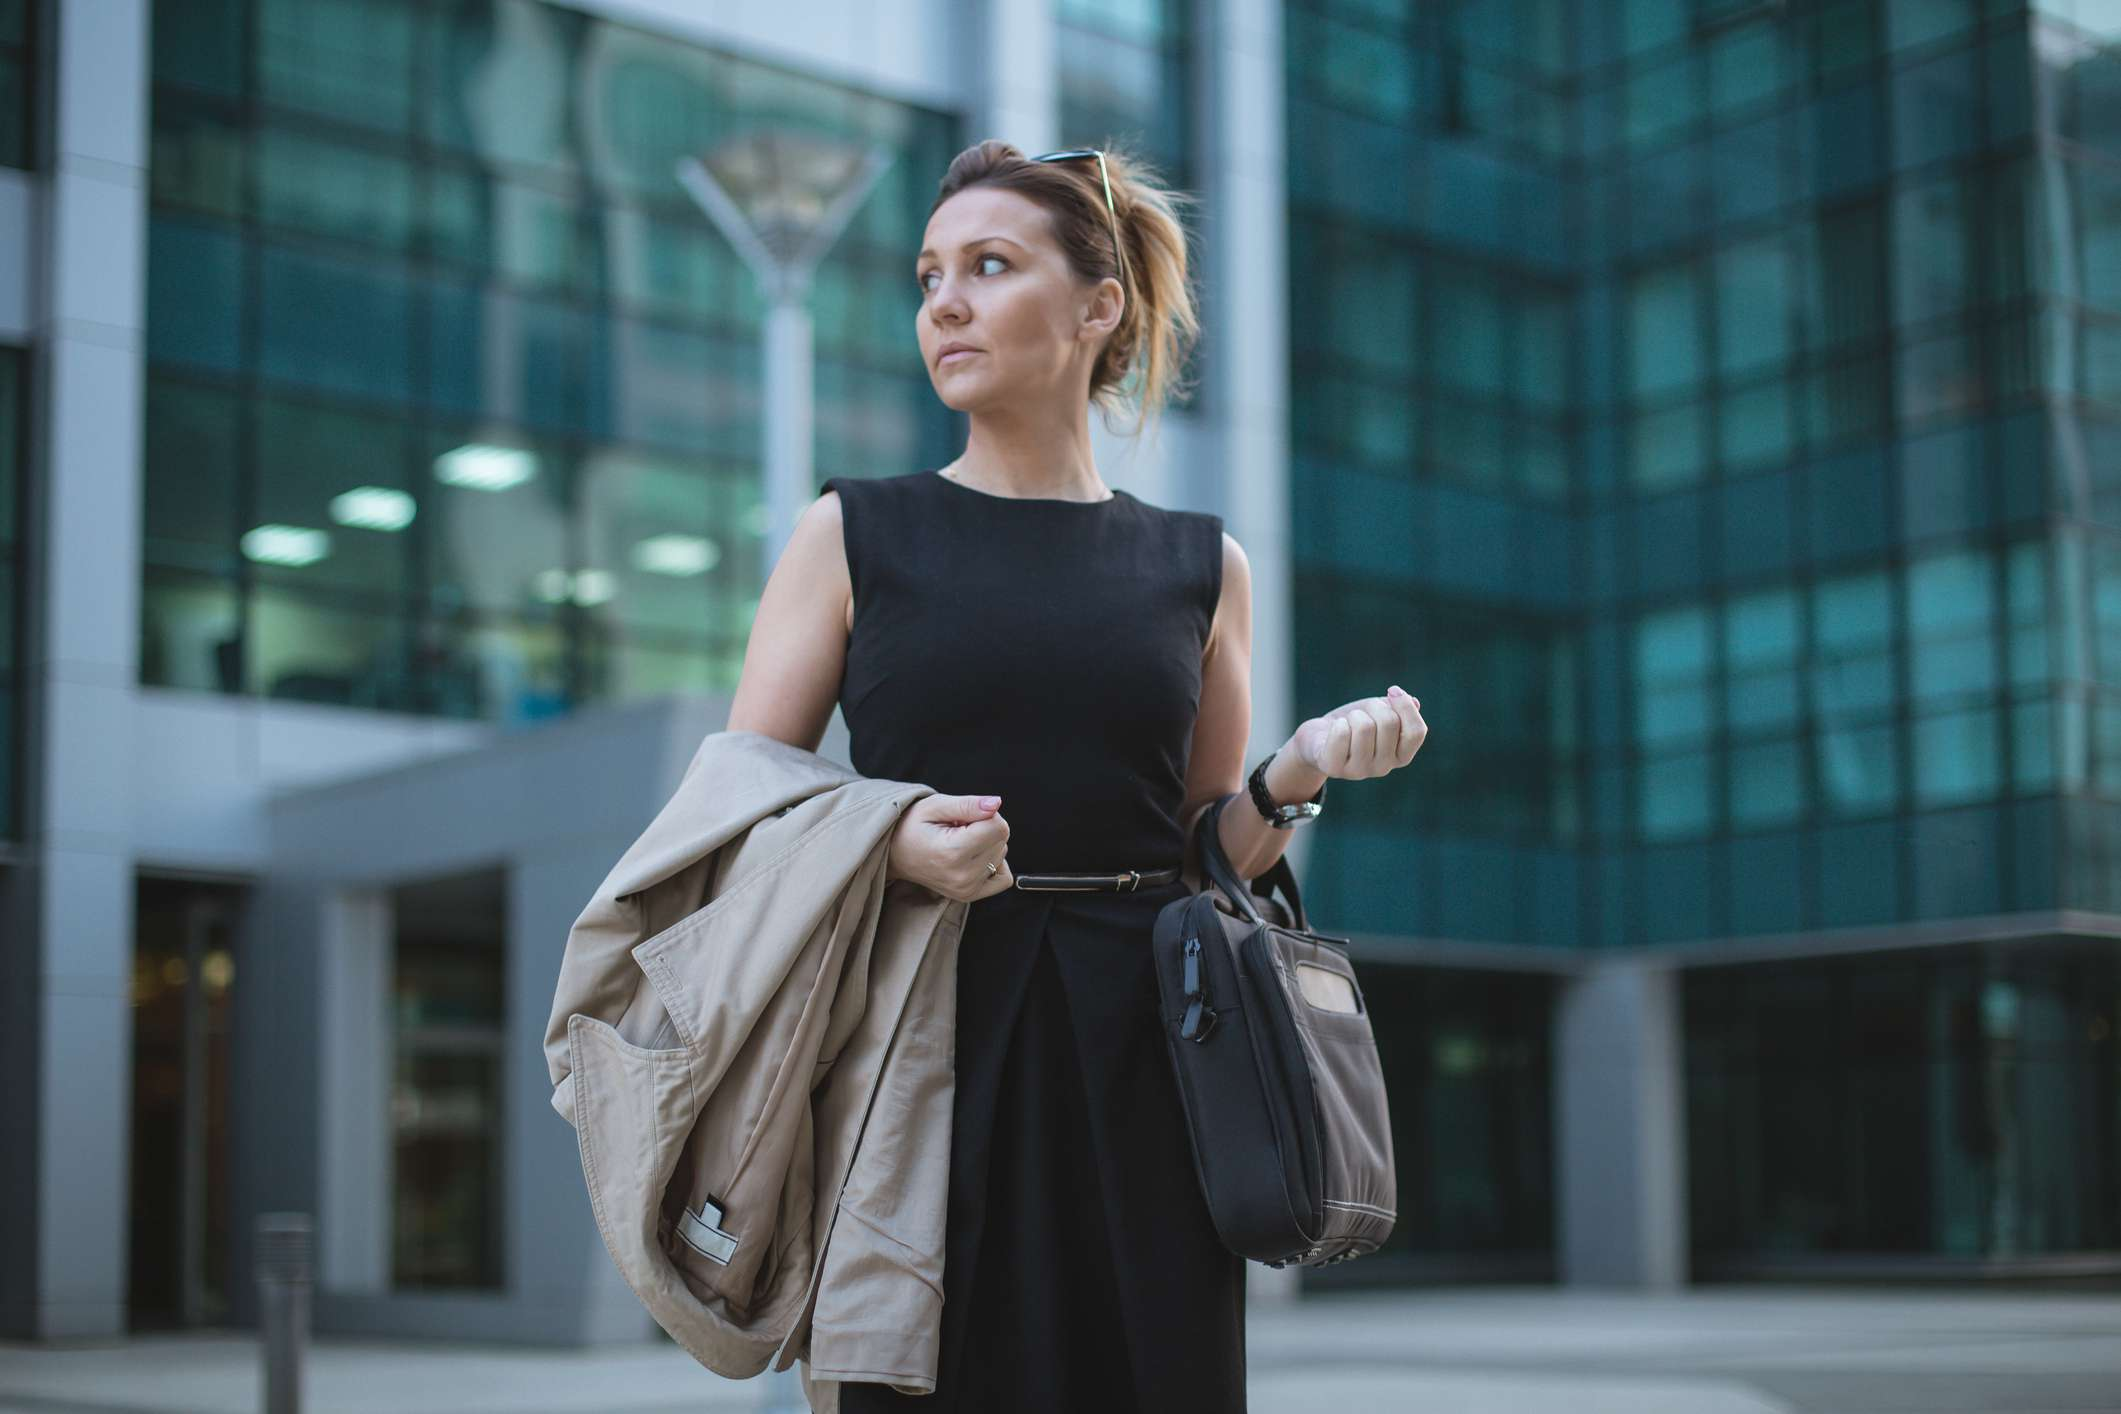 Women in Black Dress Waiting in front of a business building